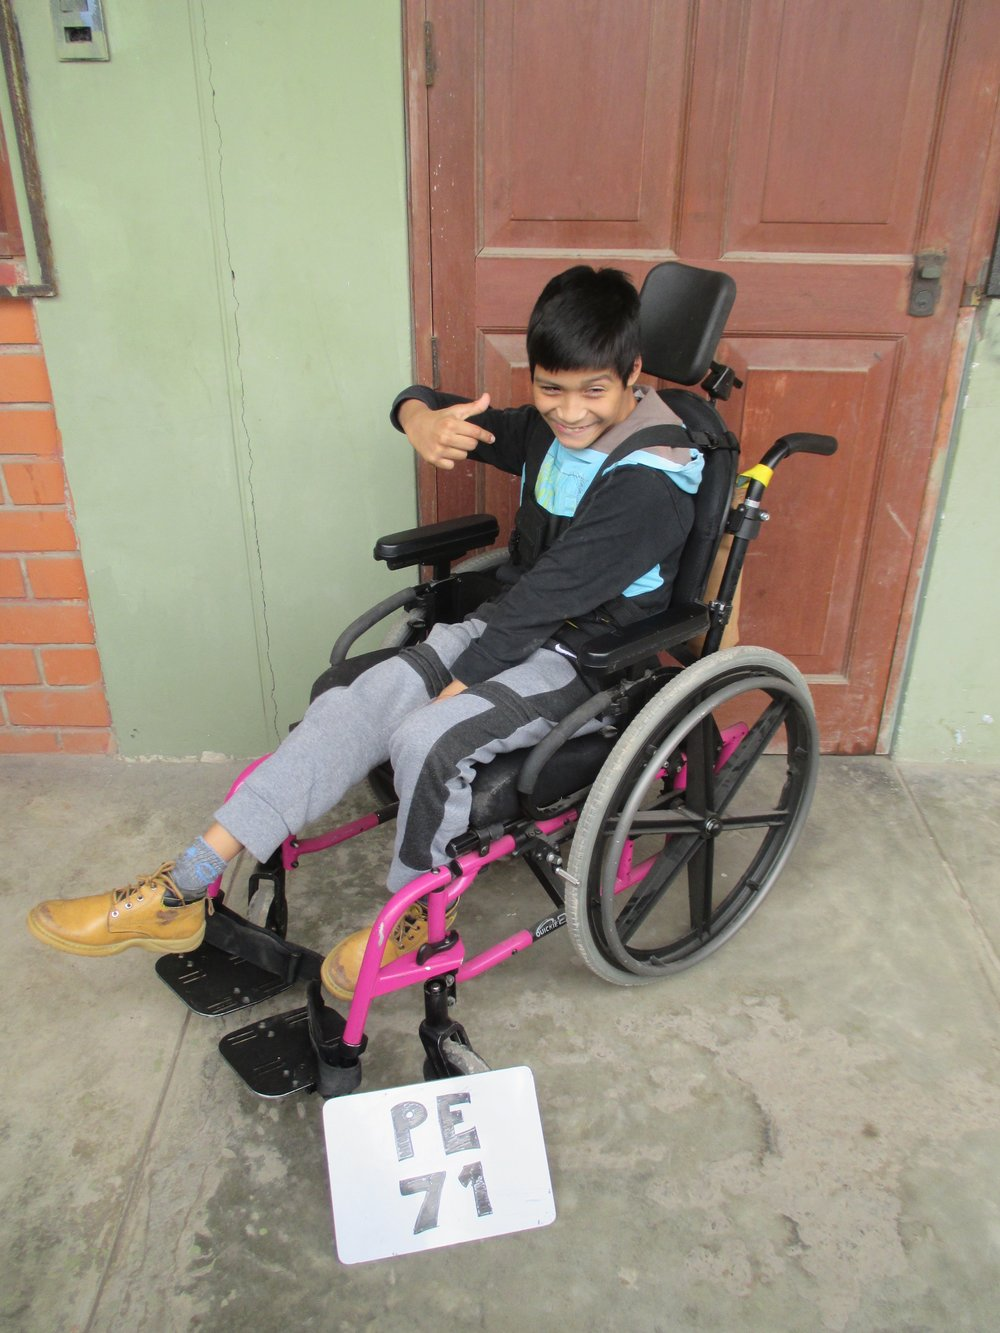 Above: Hector has Cerebral Palsy so his Dad had to carry him everywhere. Then, he received a wheelchair from the Peruvian Physical Therapy Program and can now be mobile on his own!